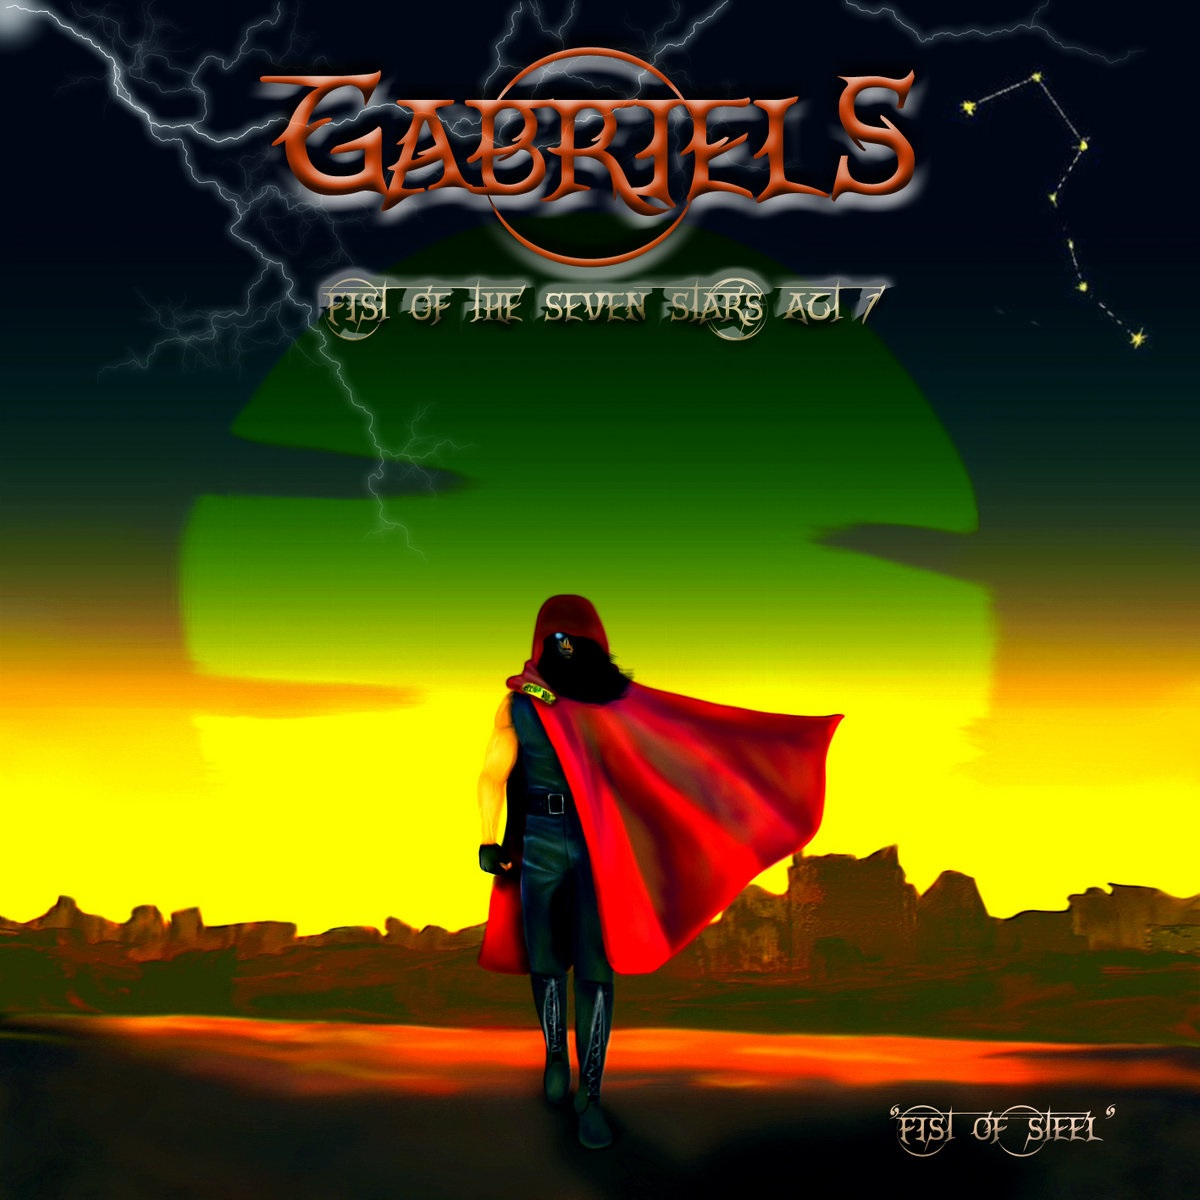 Gabriels - Fist of the Seven Stars - Act 1: Fist of Steel